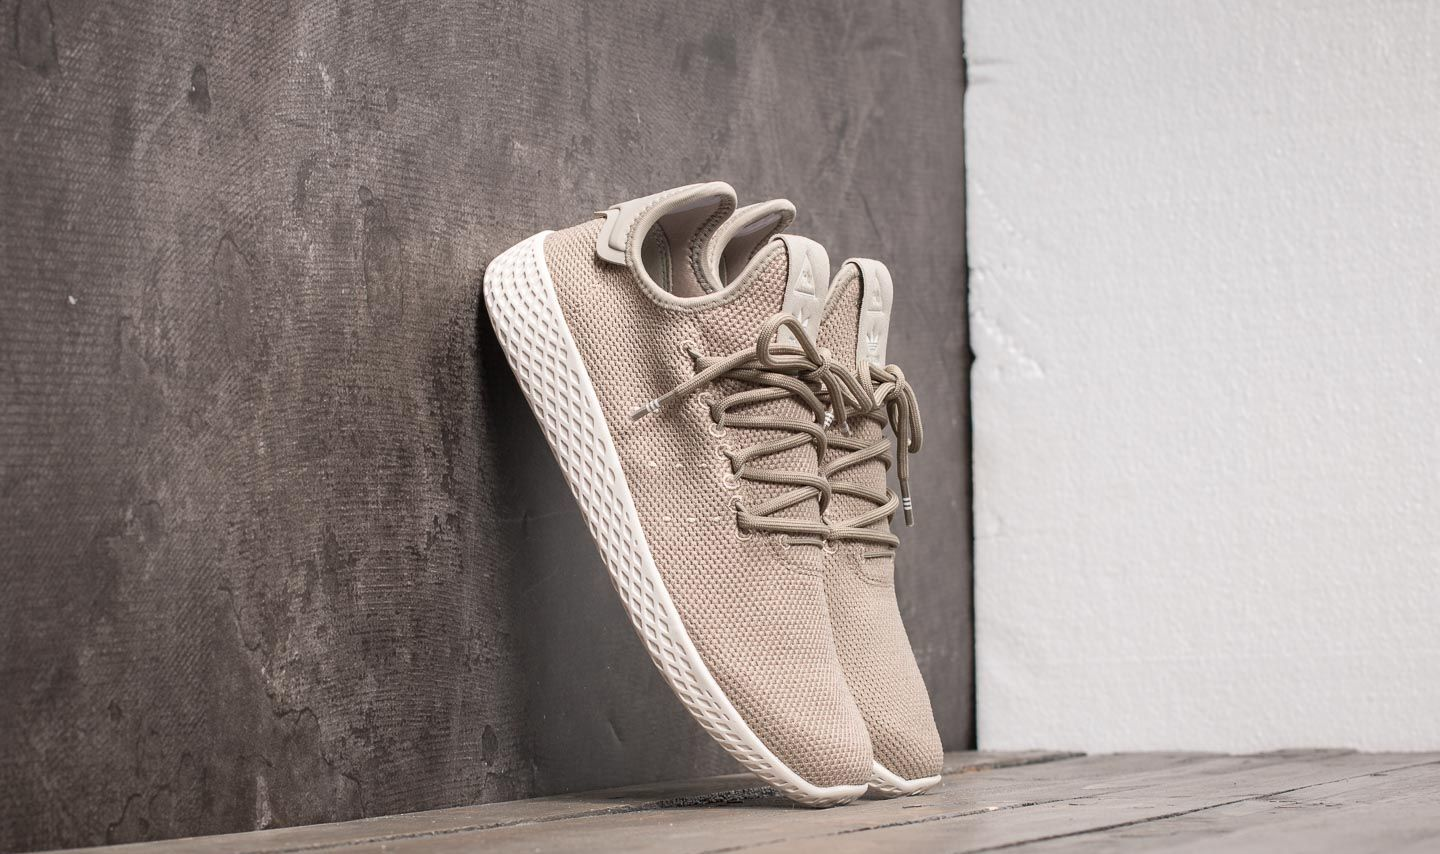 0126b86c1ada8 adidas Pharrell Williams Tennis HU J Tech Beige  Tech Beige  Core ...